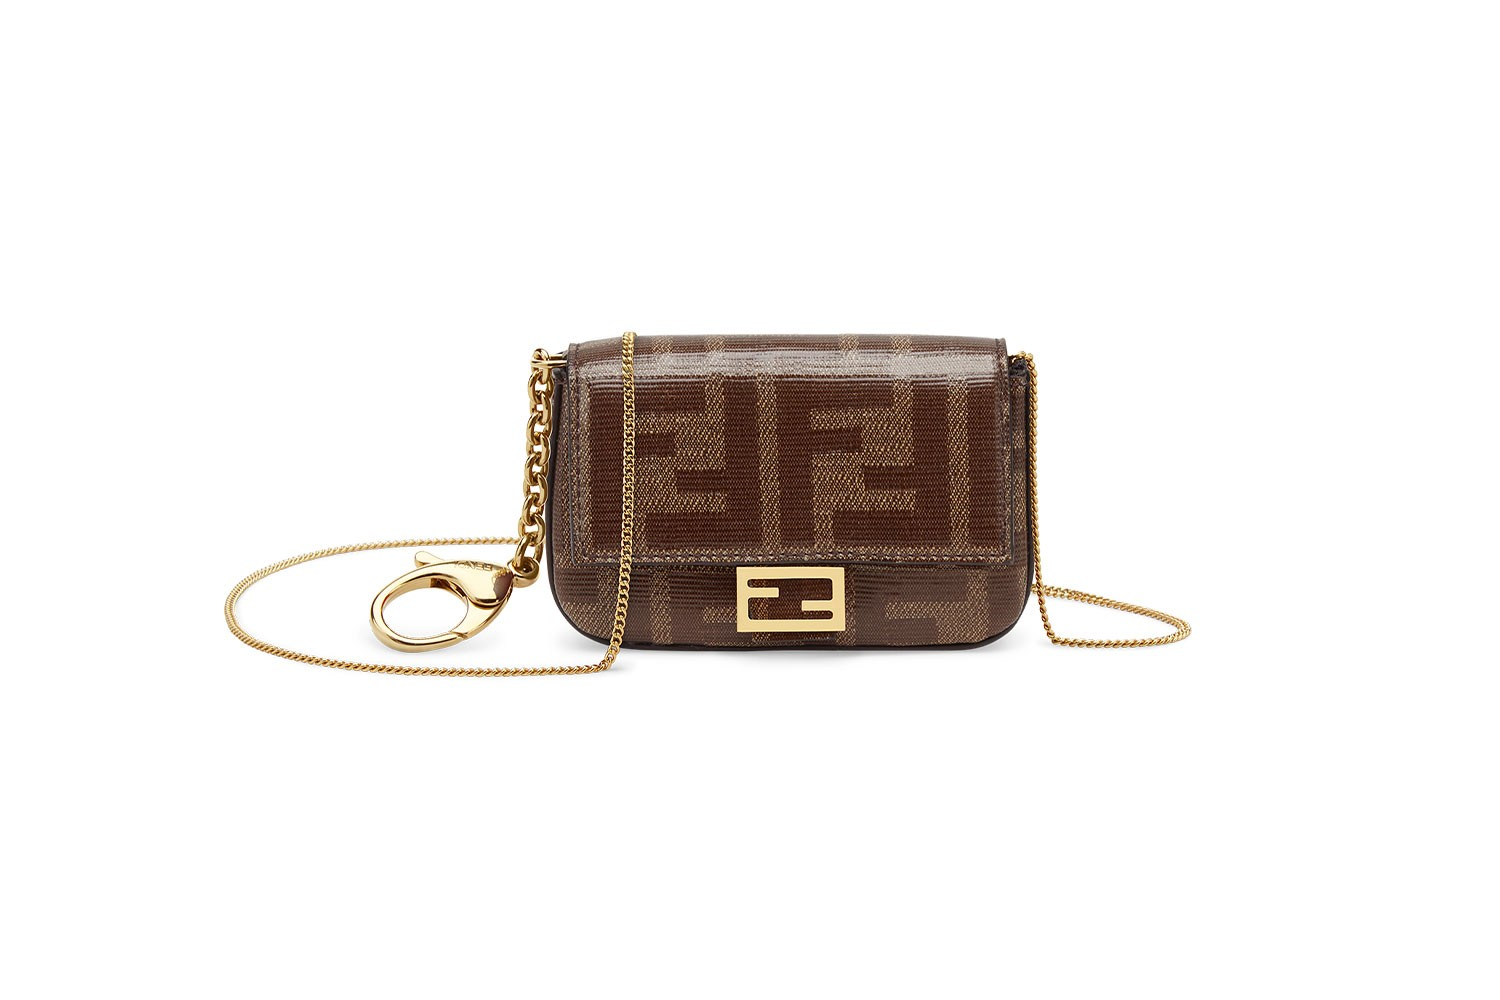 fendi baguette nano micro mini bag trend designer purses wallets leather goods